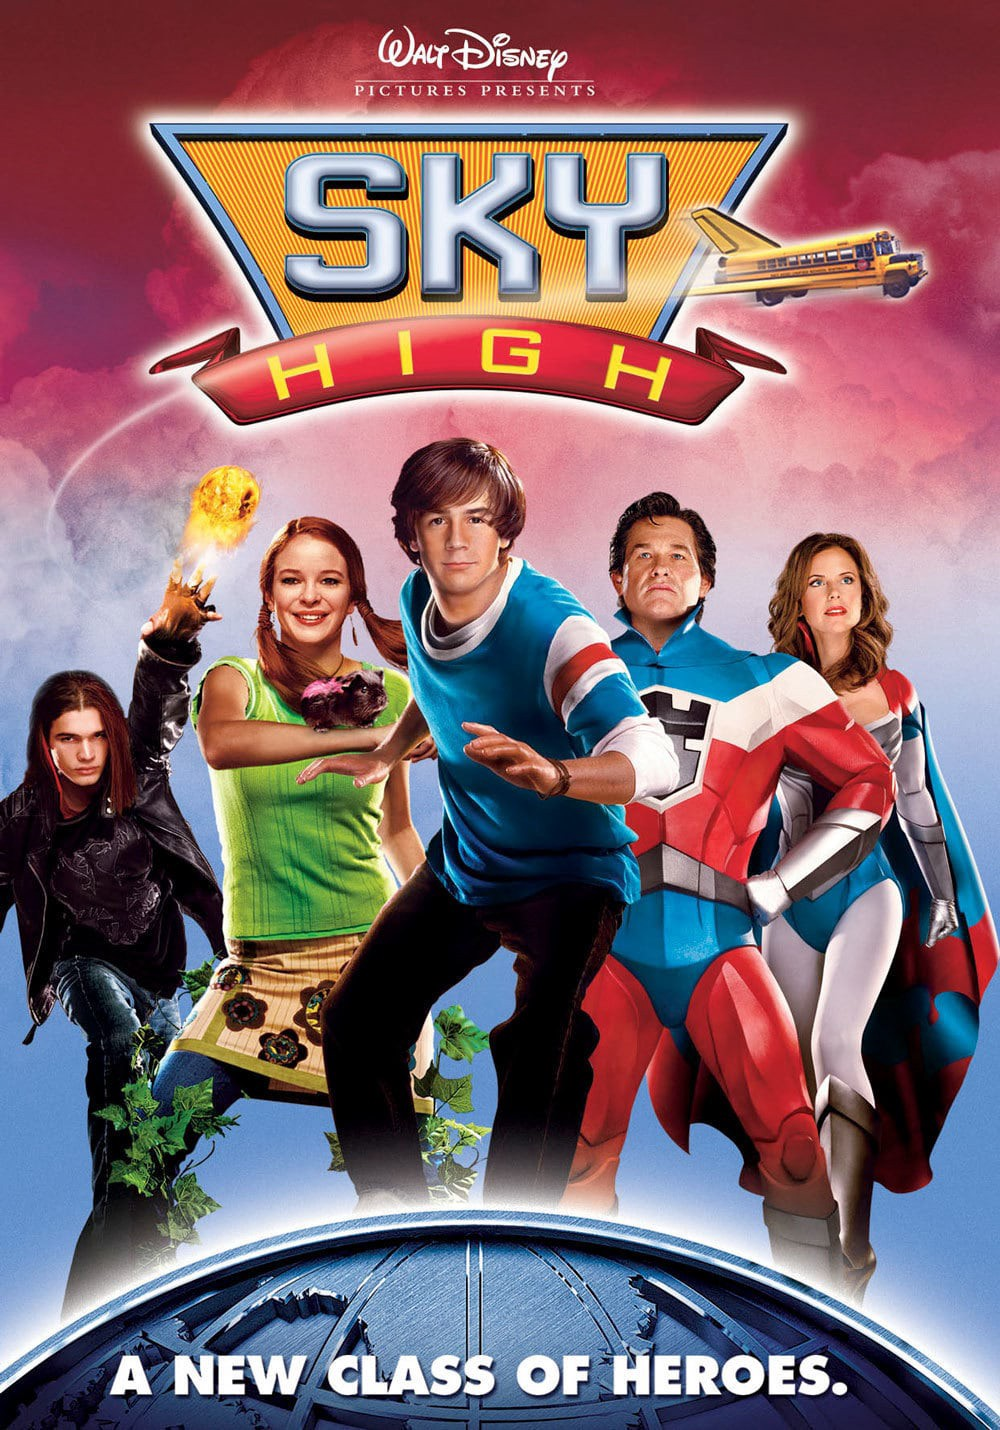 Sky High is one of the best movies of the 2000s - Allan